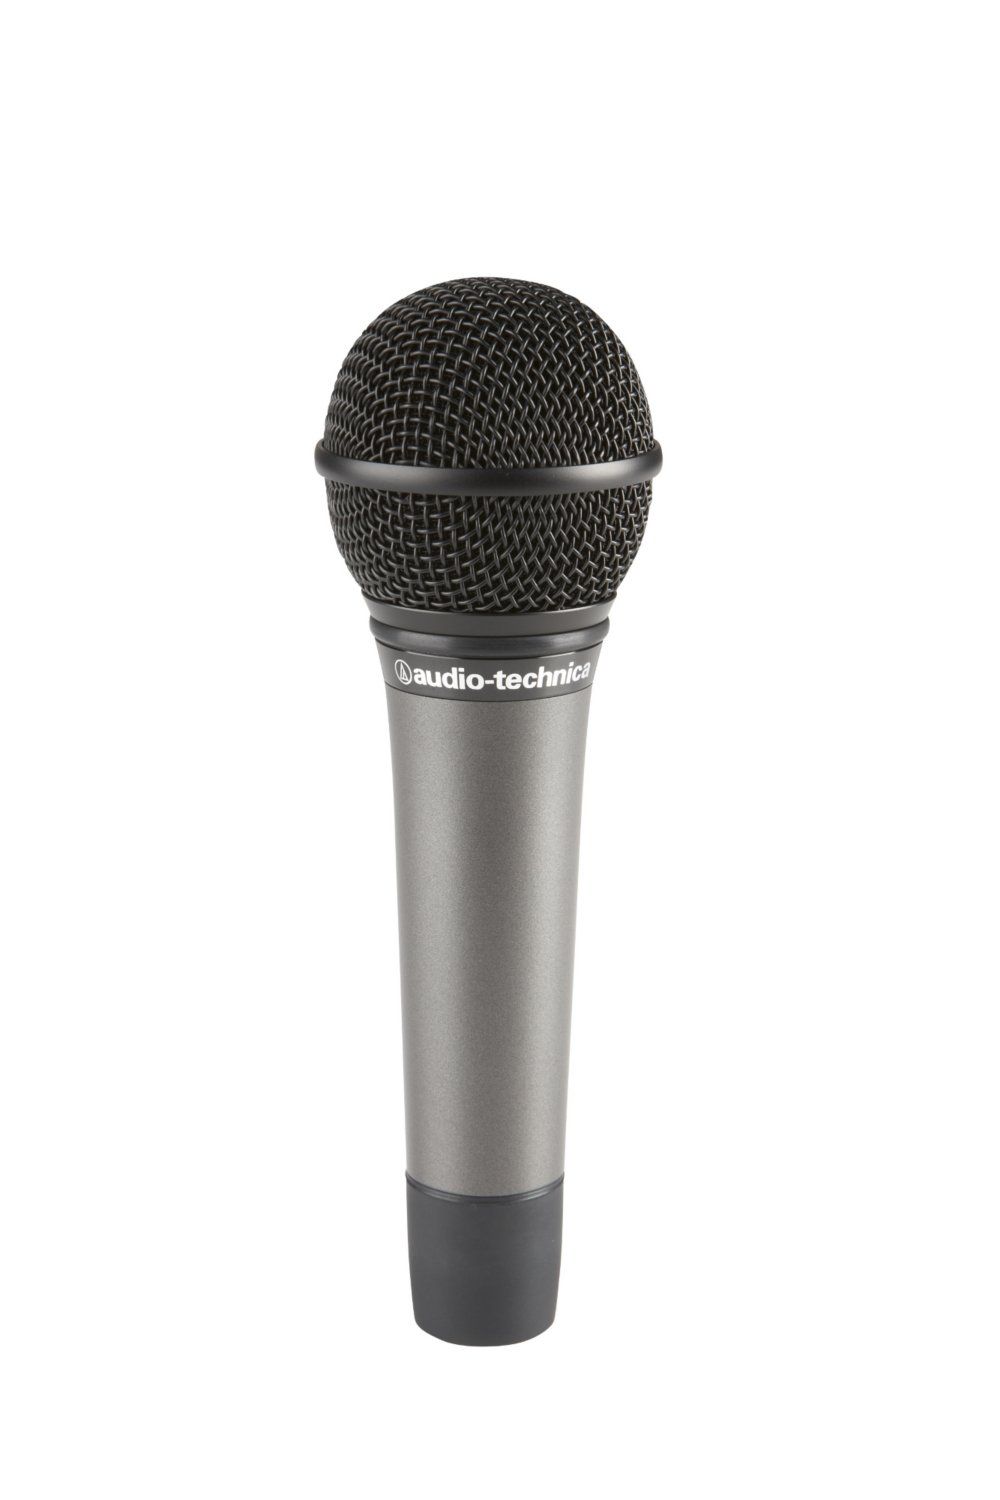 Microfono Audio-Technica ATM510 Cardioid Dynamic Handheld...